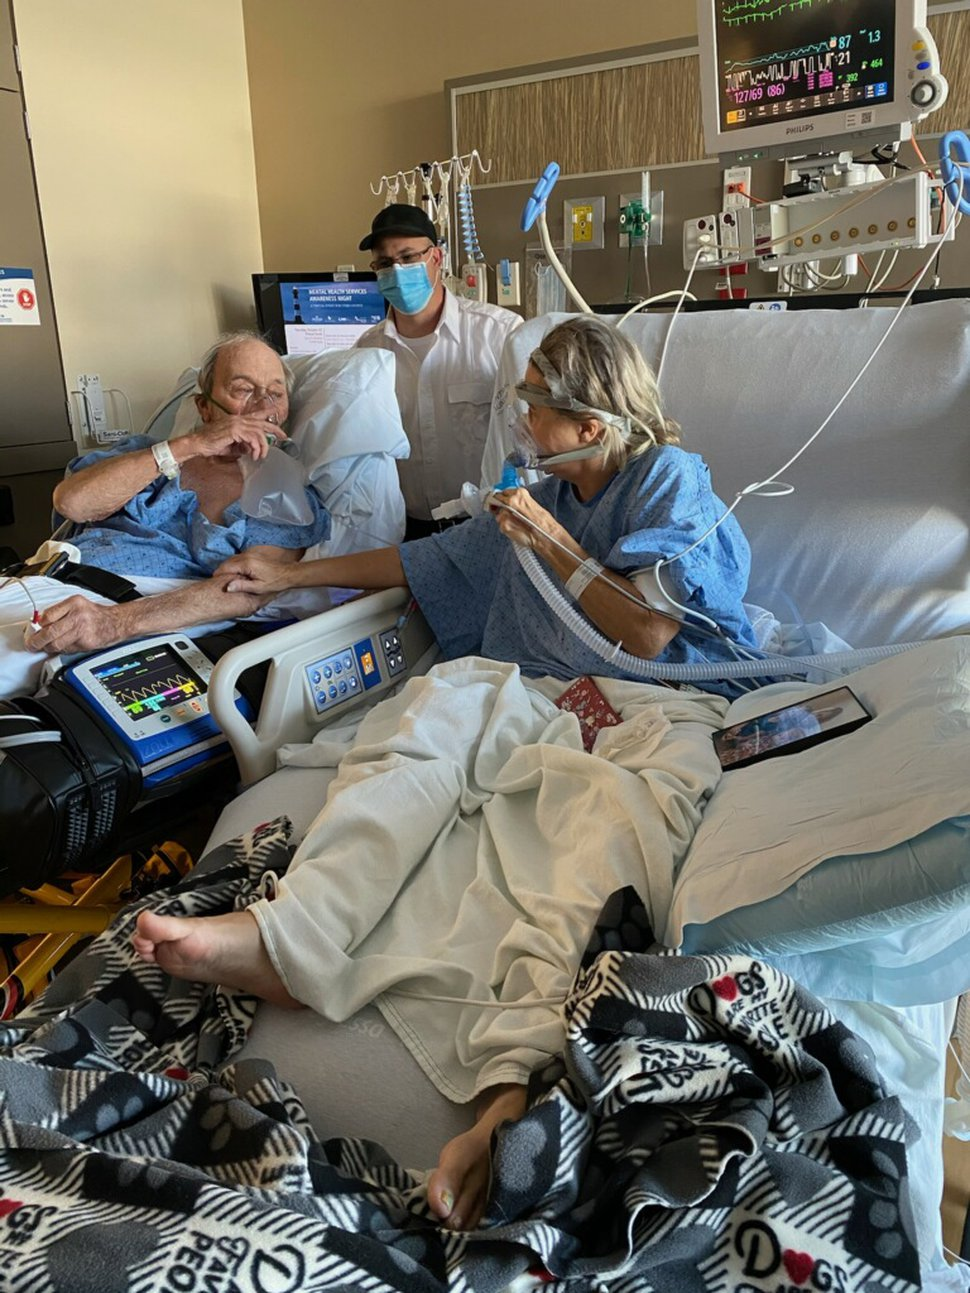 (Photo courtesy Lindsay Wootton) Bert Porter and his daughter, Tracy Larsen, visit with each other while in the hospital battling complications from COVID-19. The father and daughter both died from the disease in October 2020.